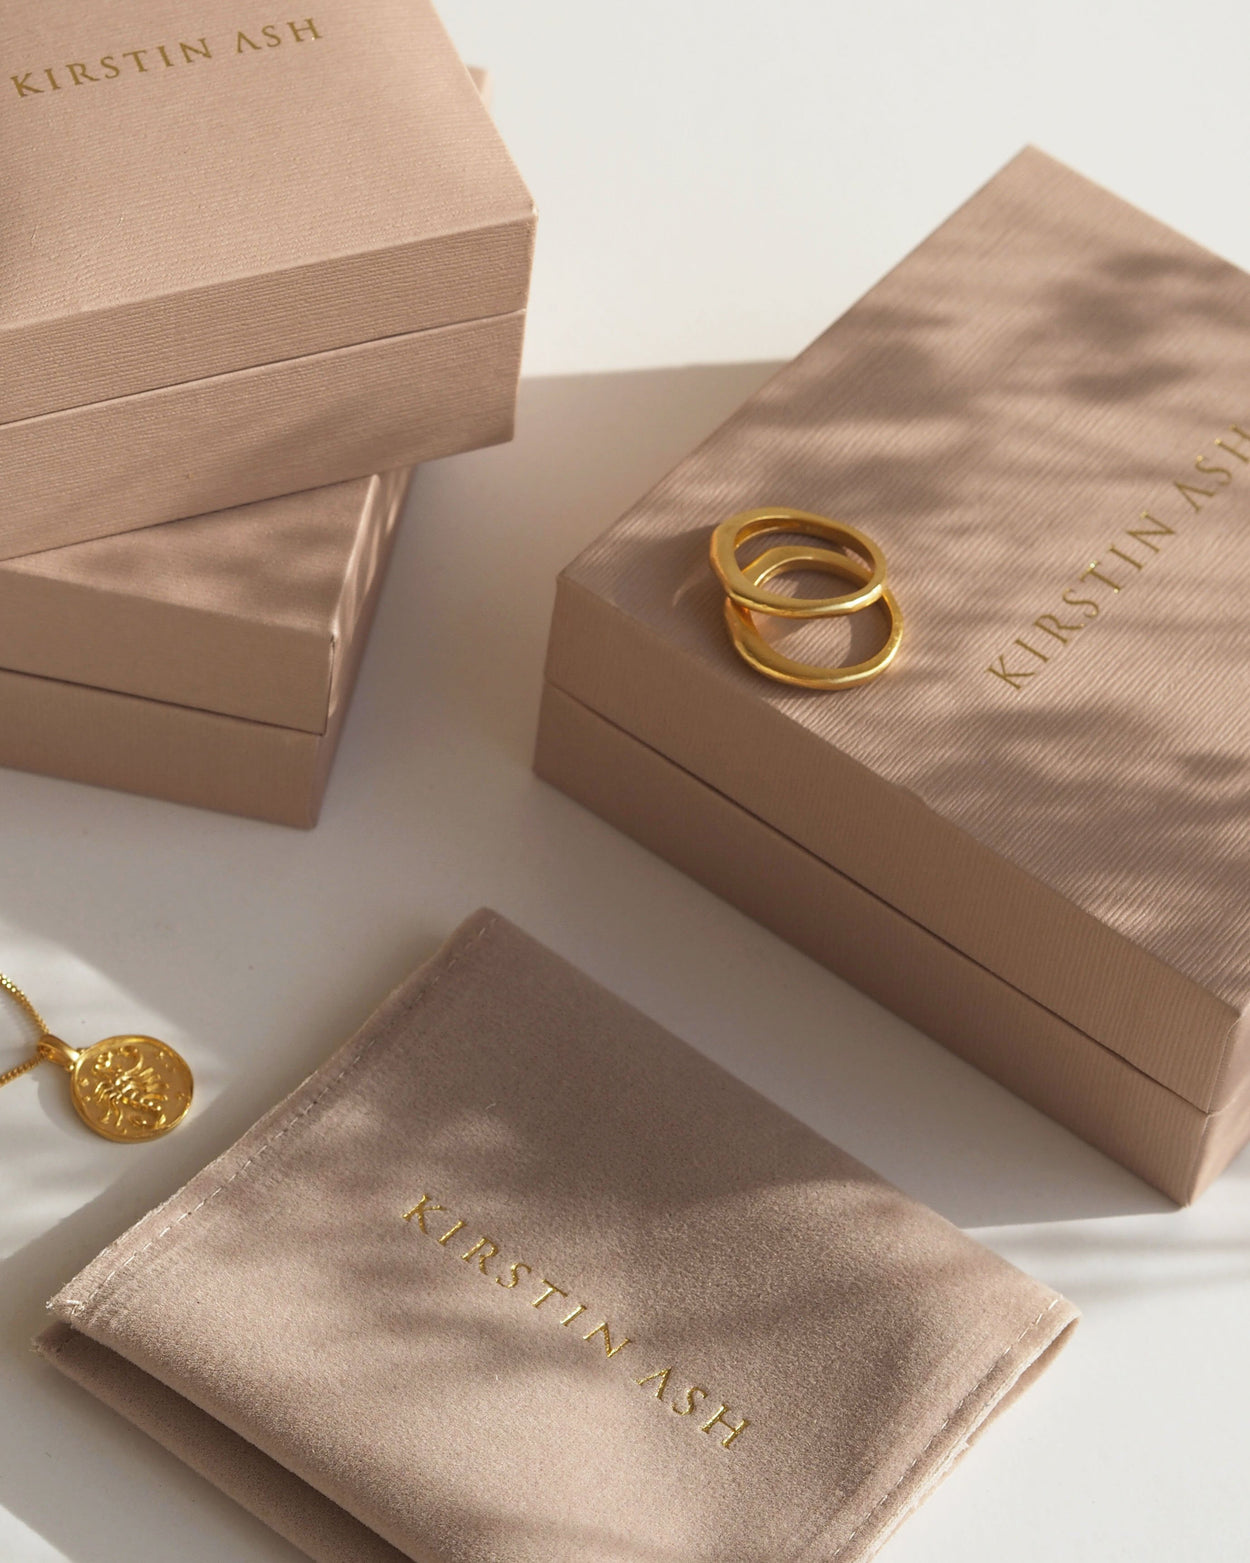 INFINITE NECKLACE (18K-GOLD-PLATED) - BOX